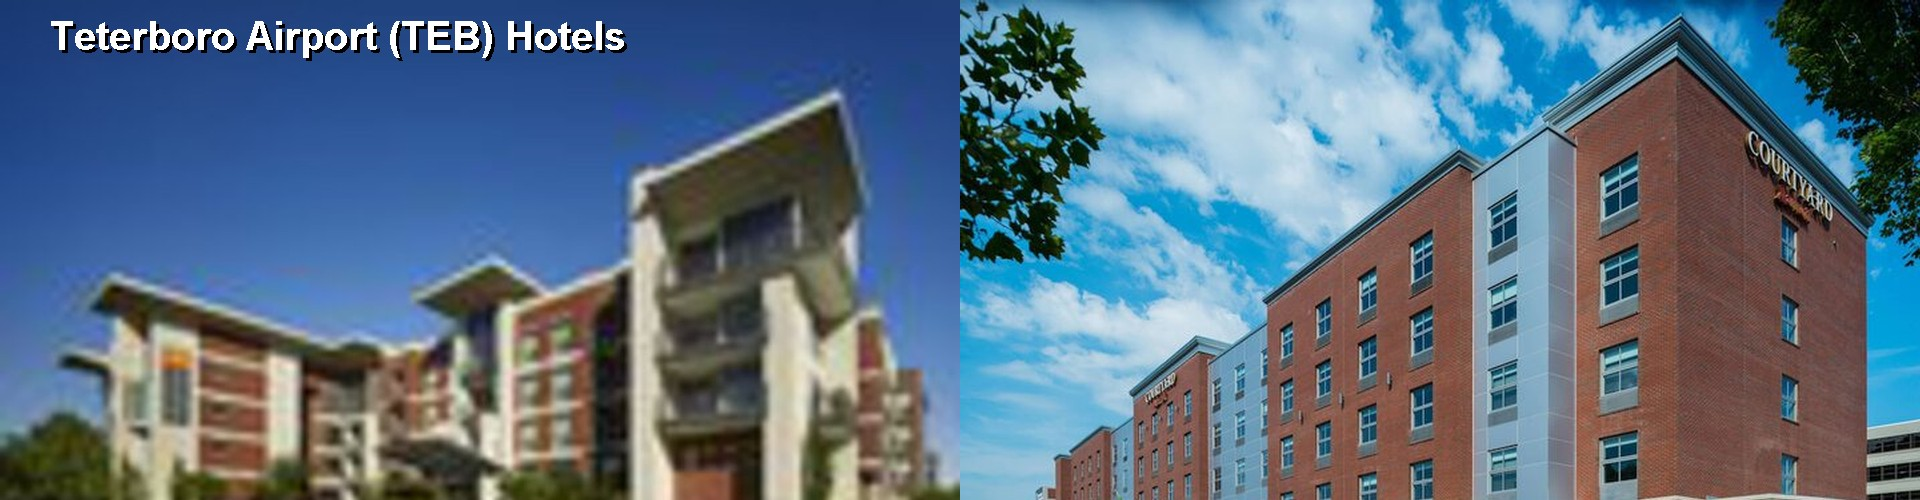 5 Best Hotels near Teterboro Airport (TEB)